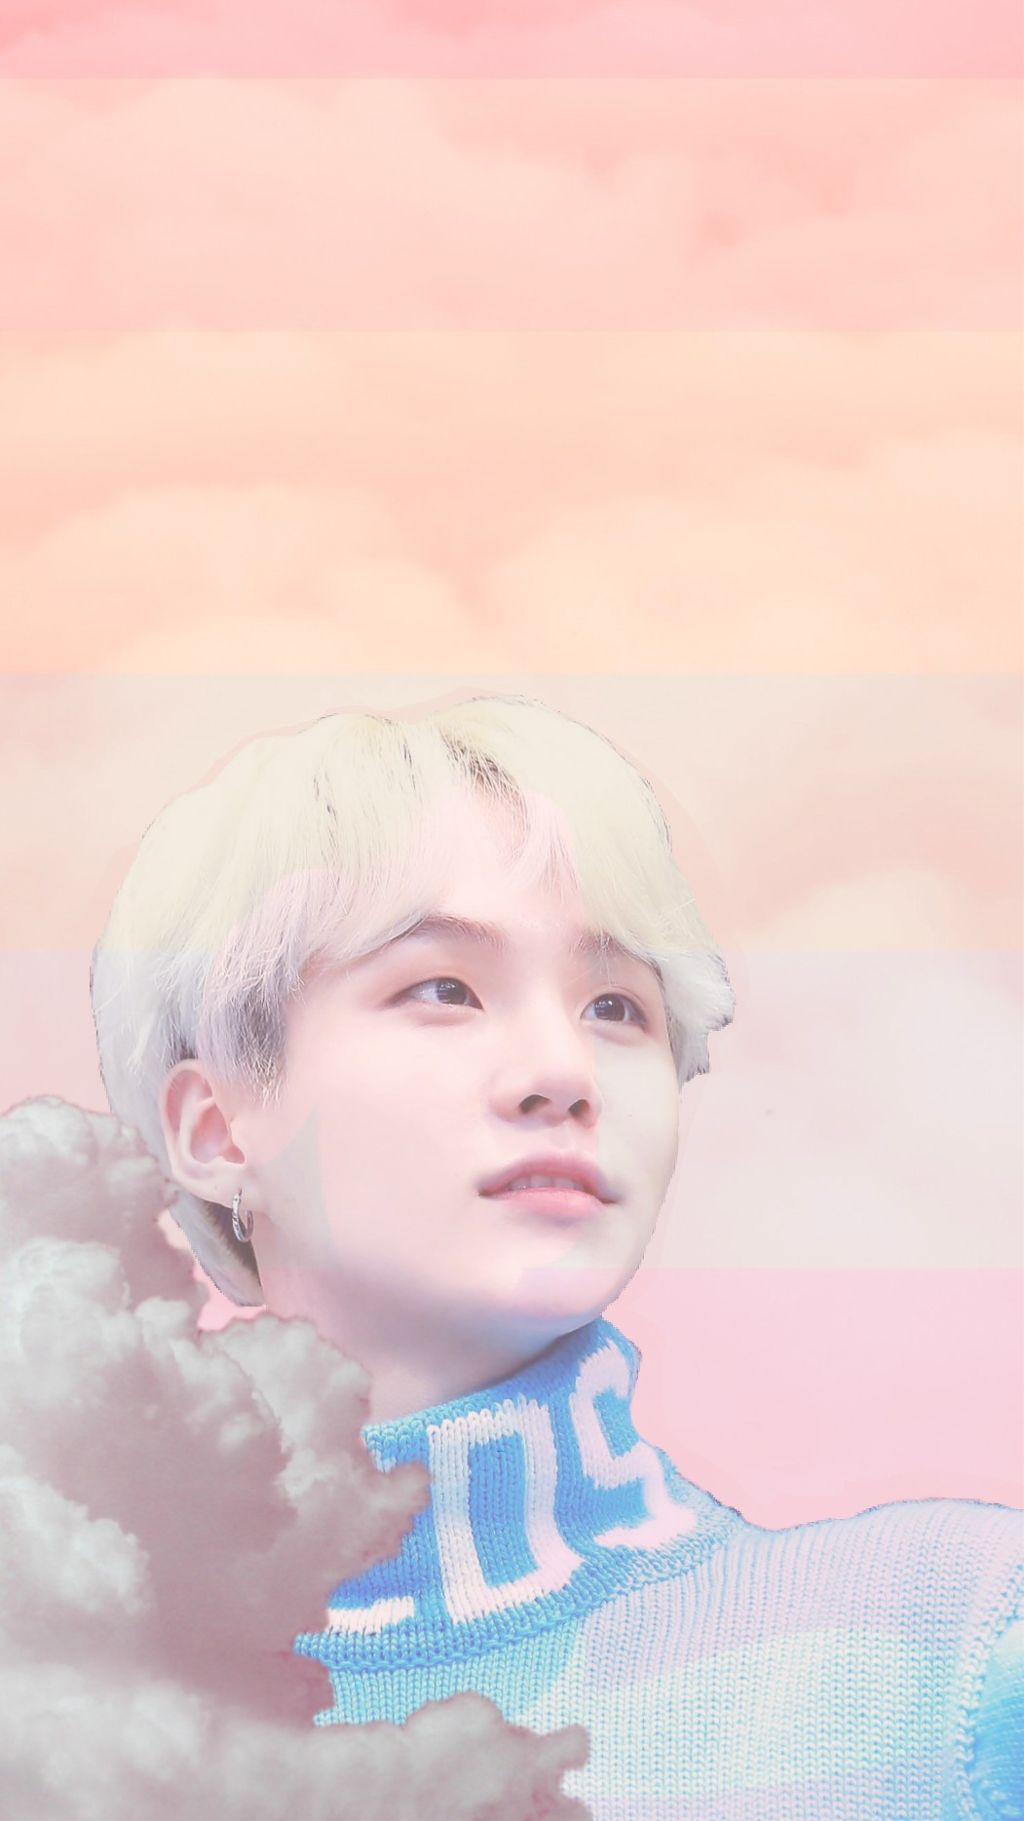 #suga #clouds #lgbt #yoongibts